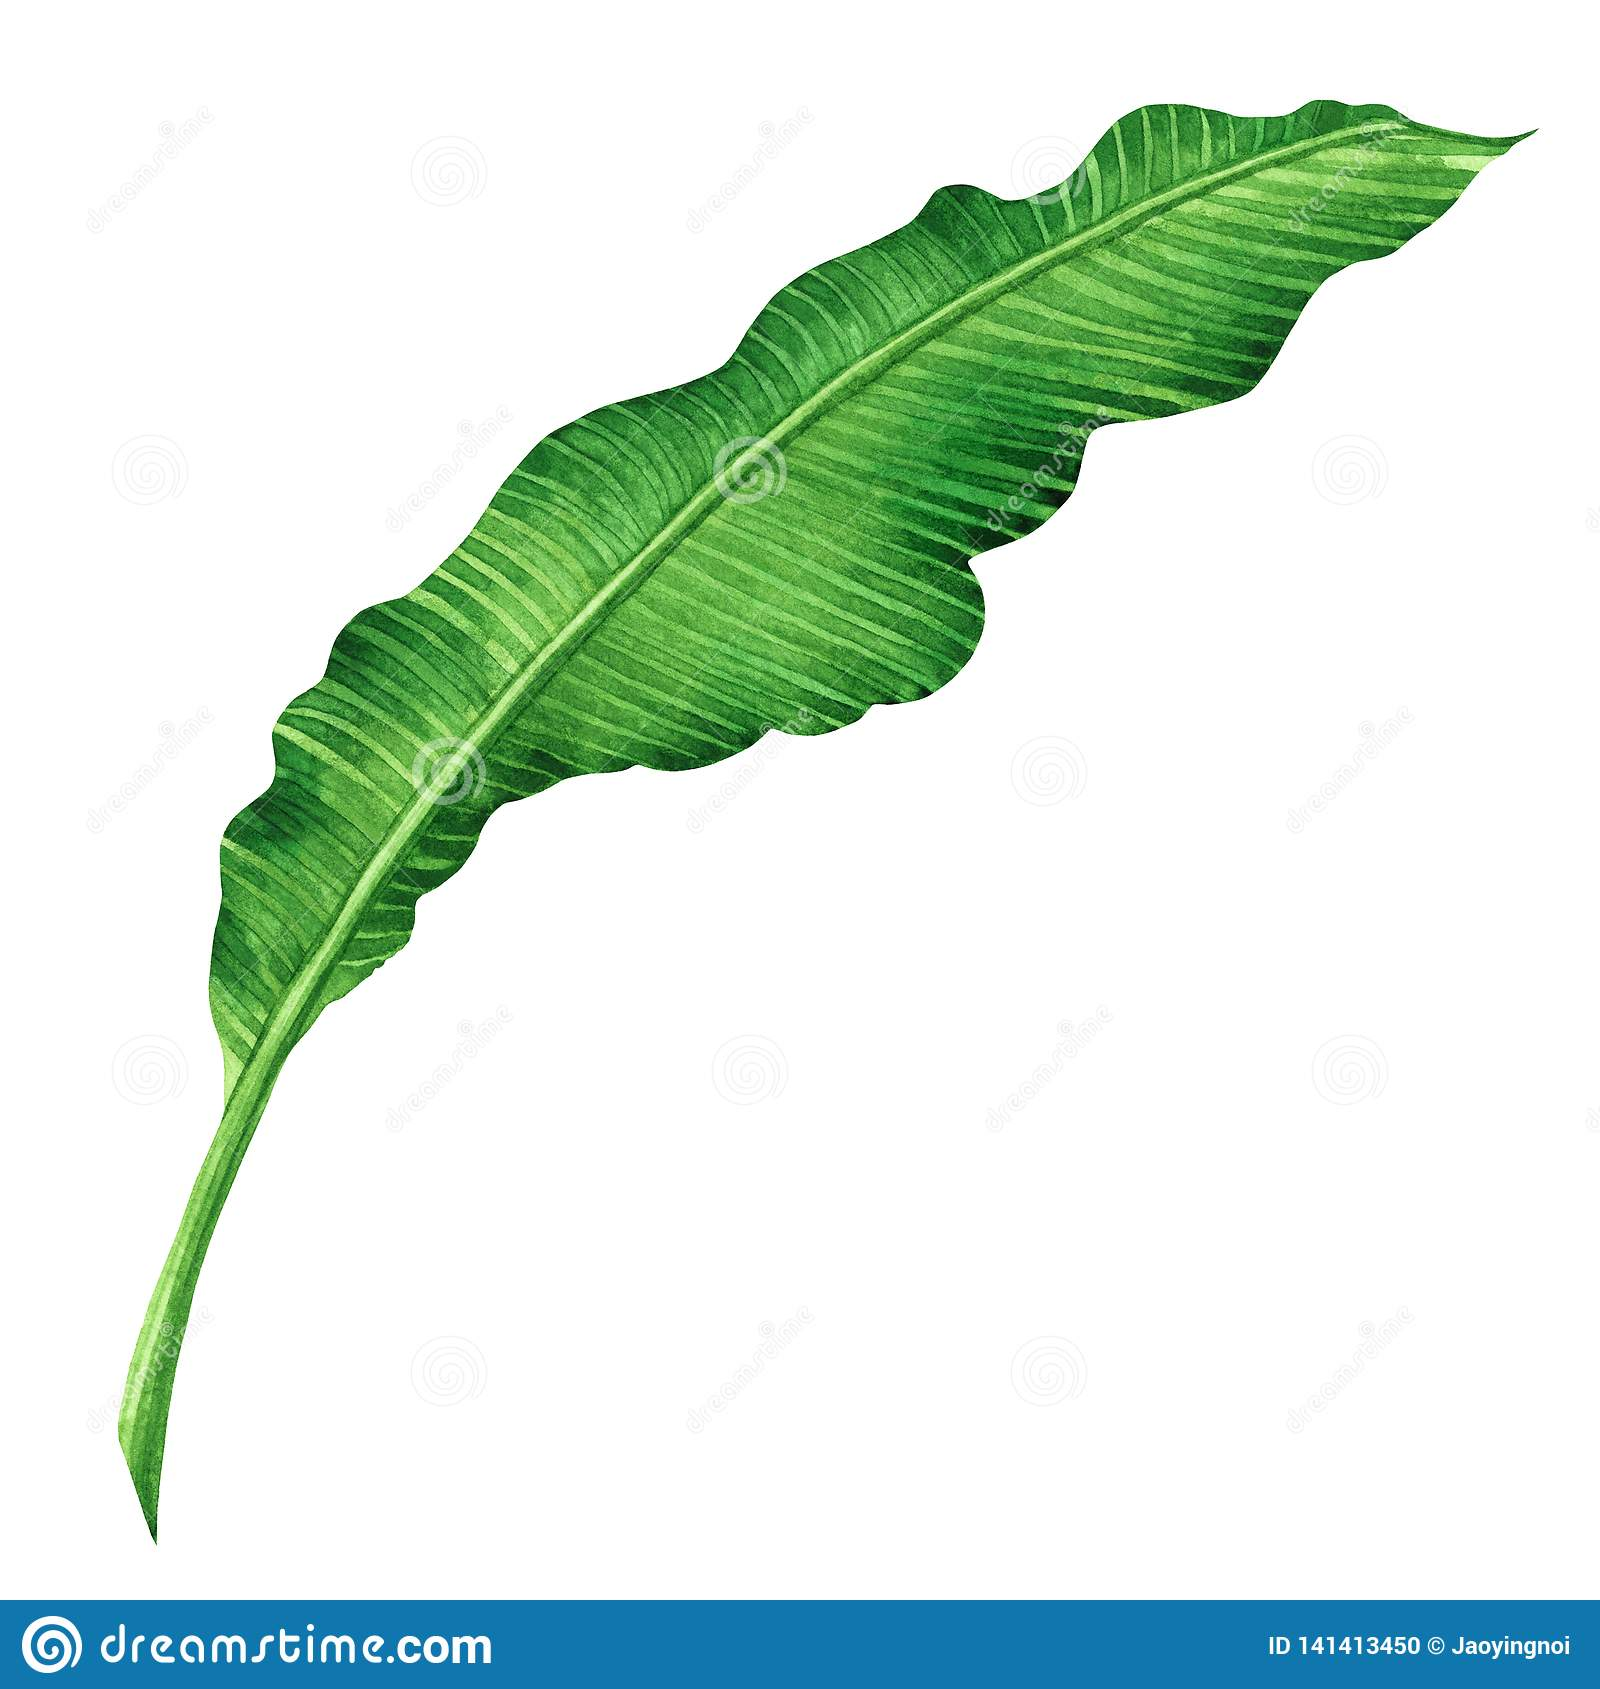 Watercolor painting green leaves isolated on white background.Watercolor hand painted illustration palm,banana leave tropical exot